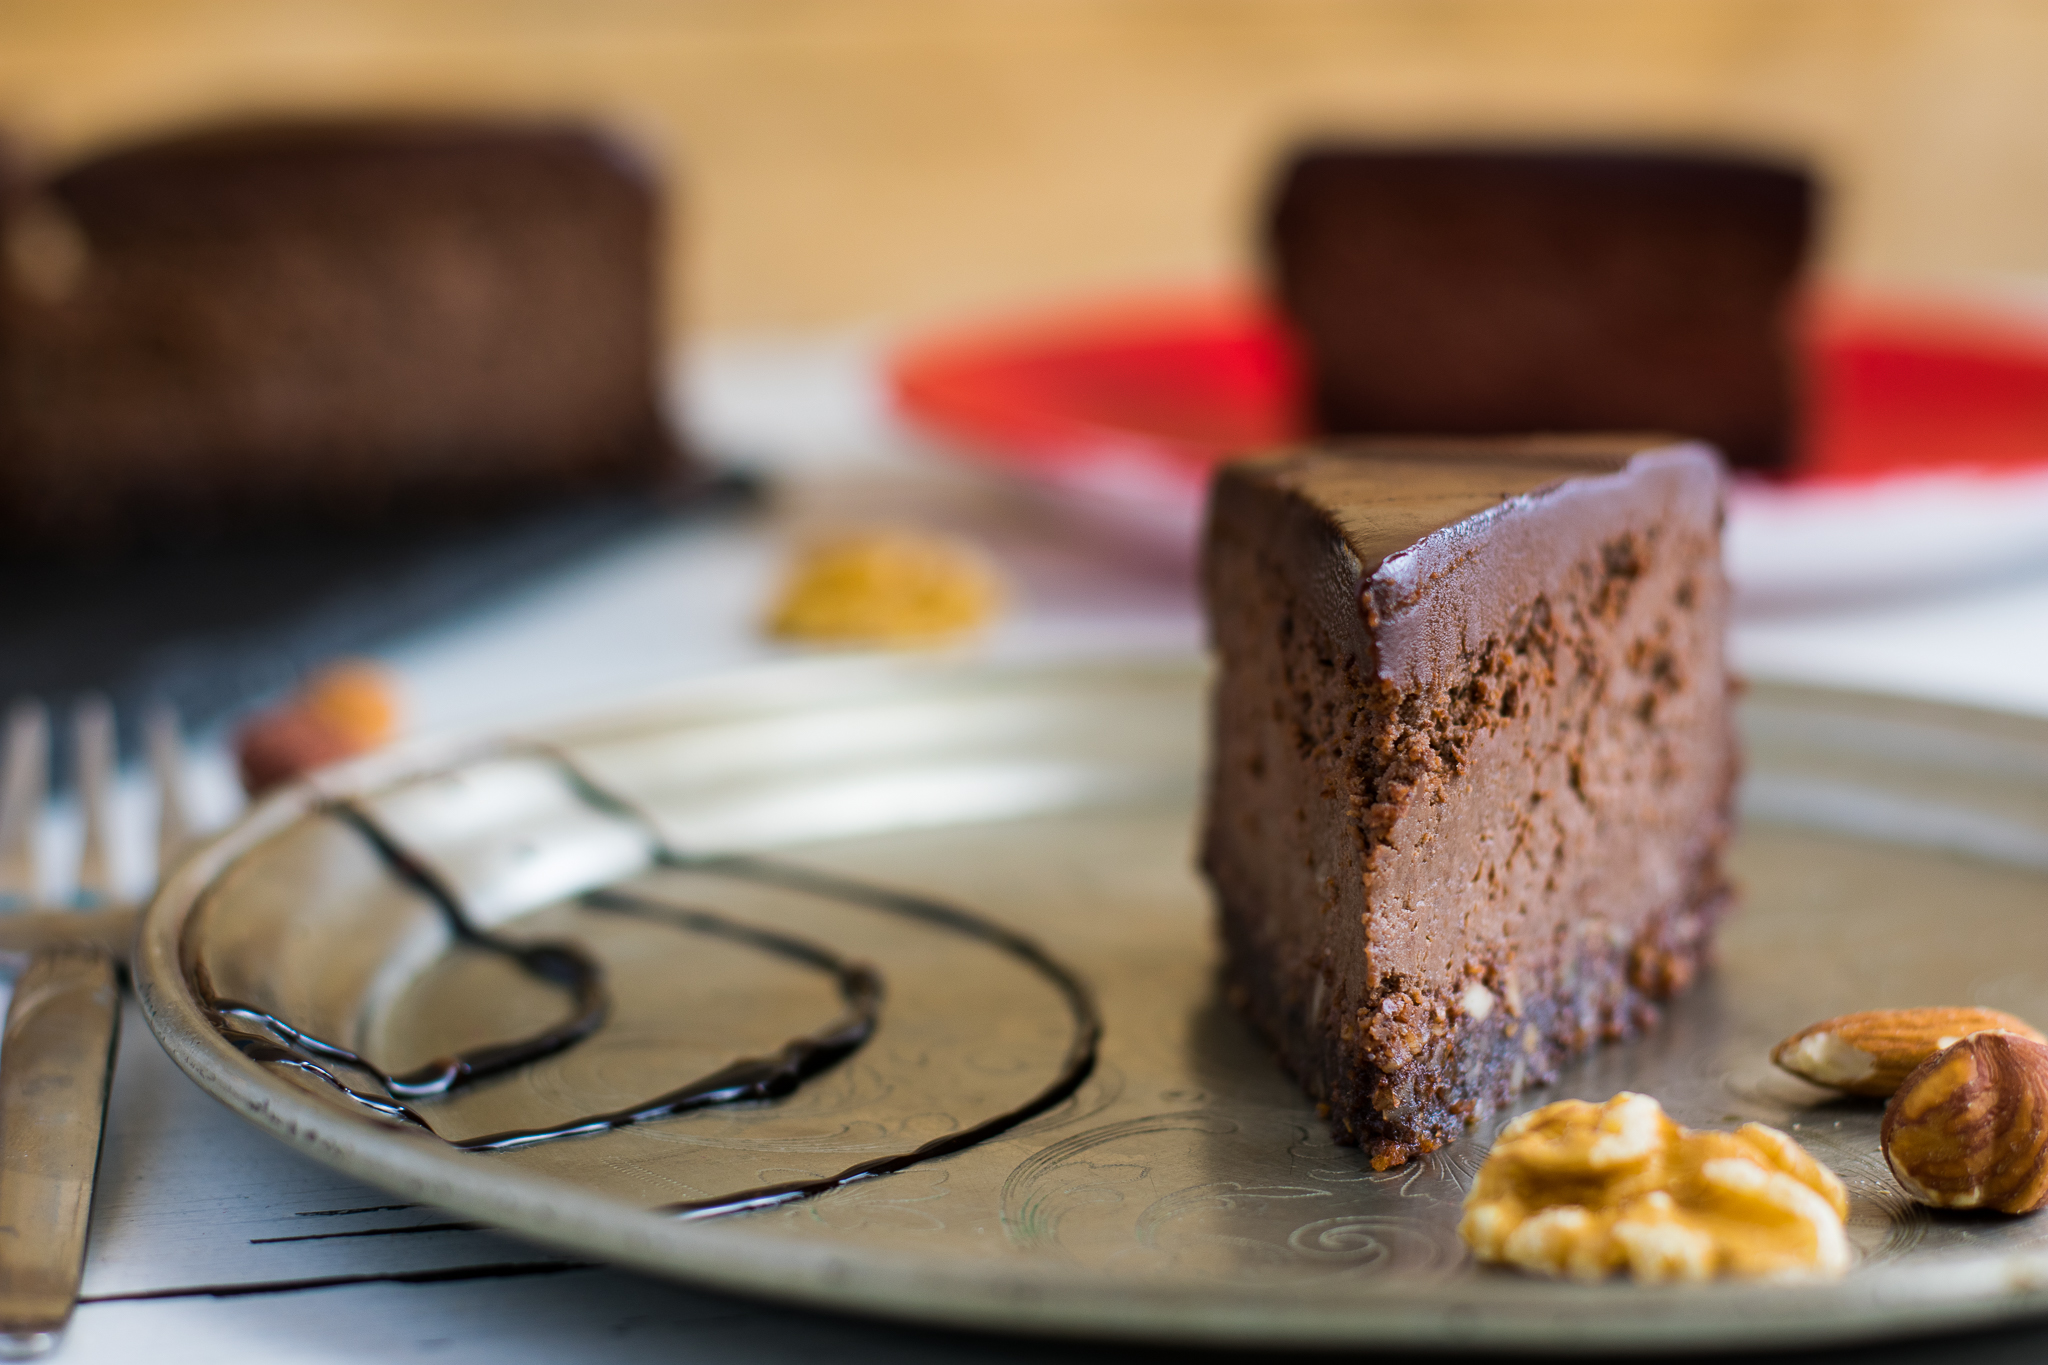 Keto-low-carb-chocolate-cheesecake-recipe-2-SunCakeMom